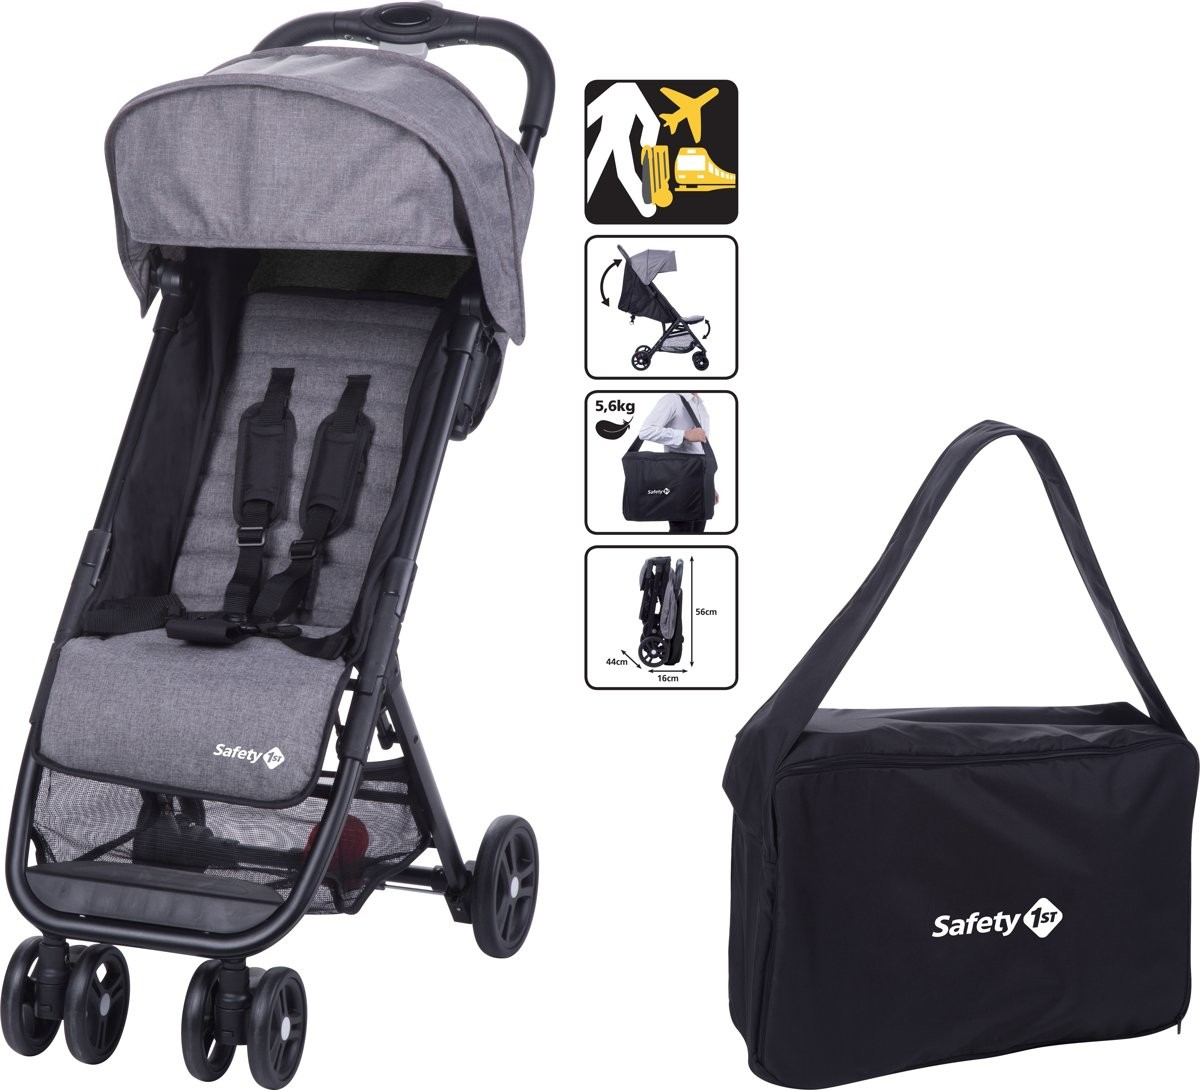 Buggy Safety 1st Teeny Black Chic + Transporttas